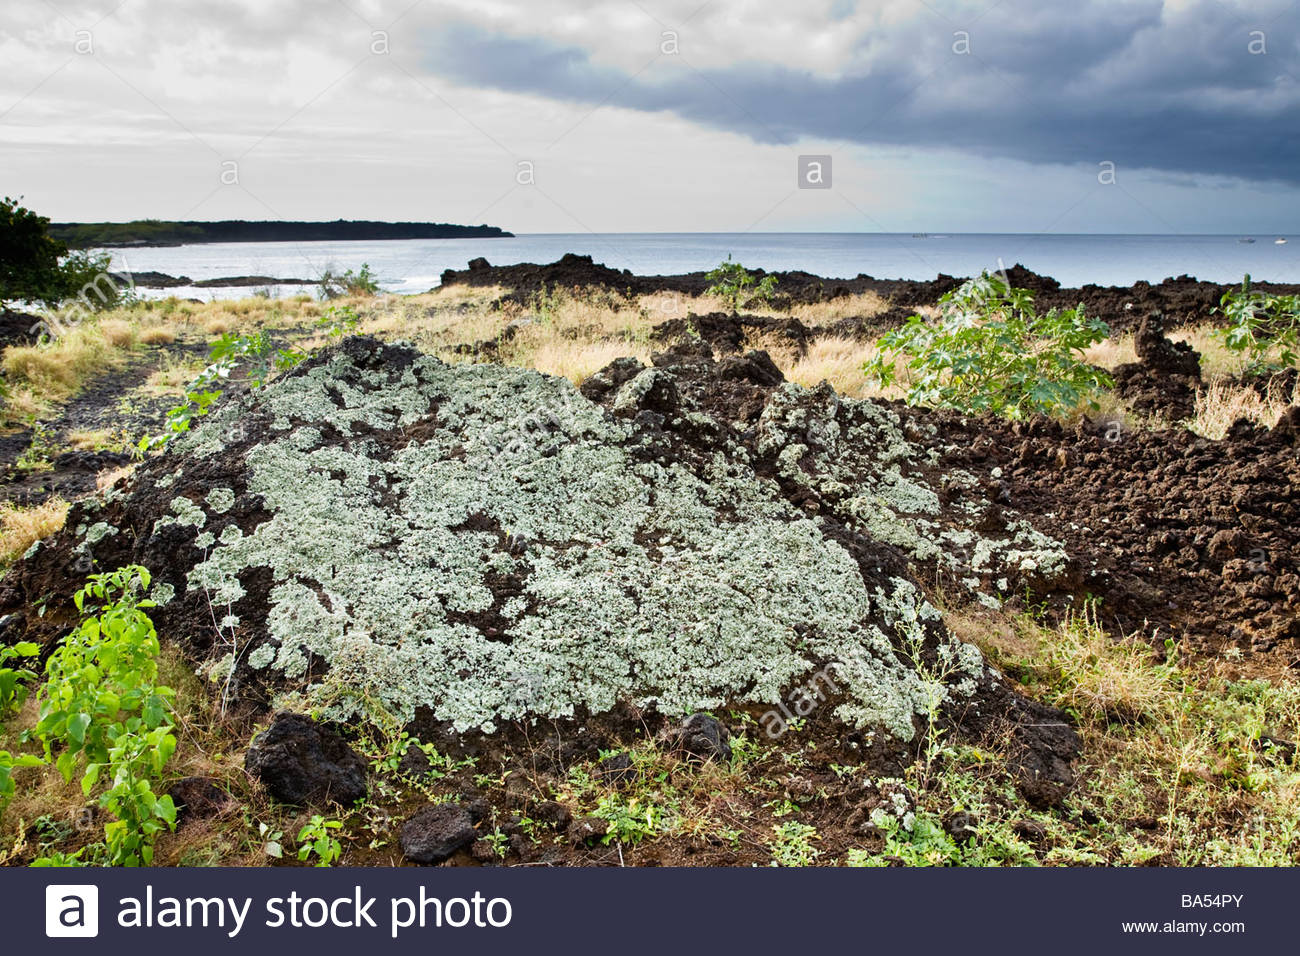 Plants and lichen establish foothold on lava field near La Perouse Bay on the island of Maui in the state of Hawaii - Stock Image